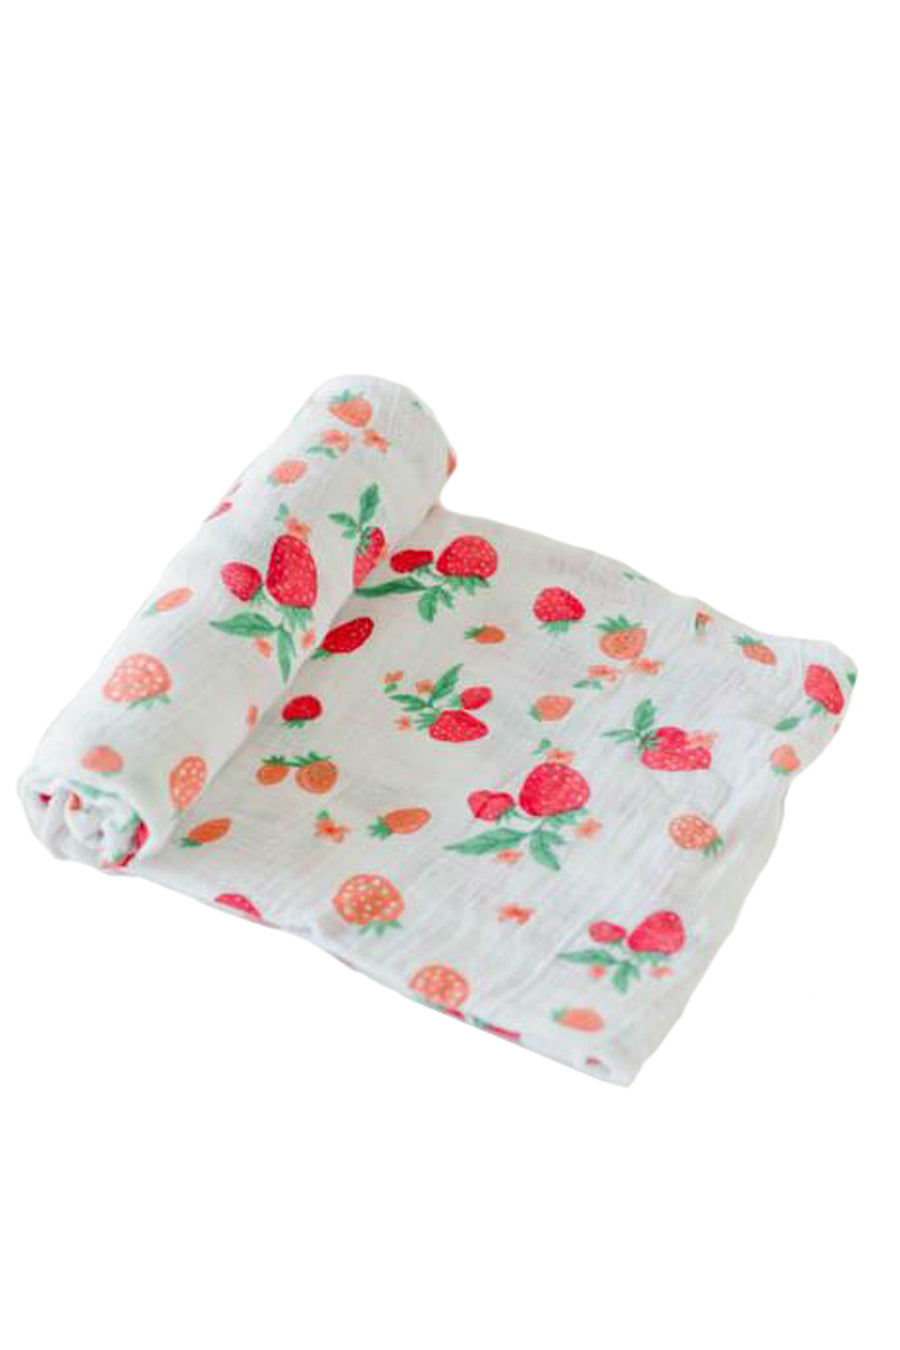 Strawberry Cotton Muslin Swaddle